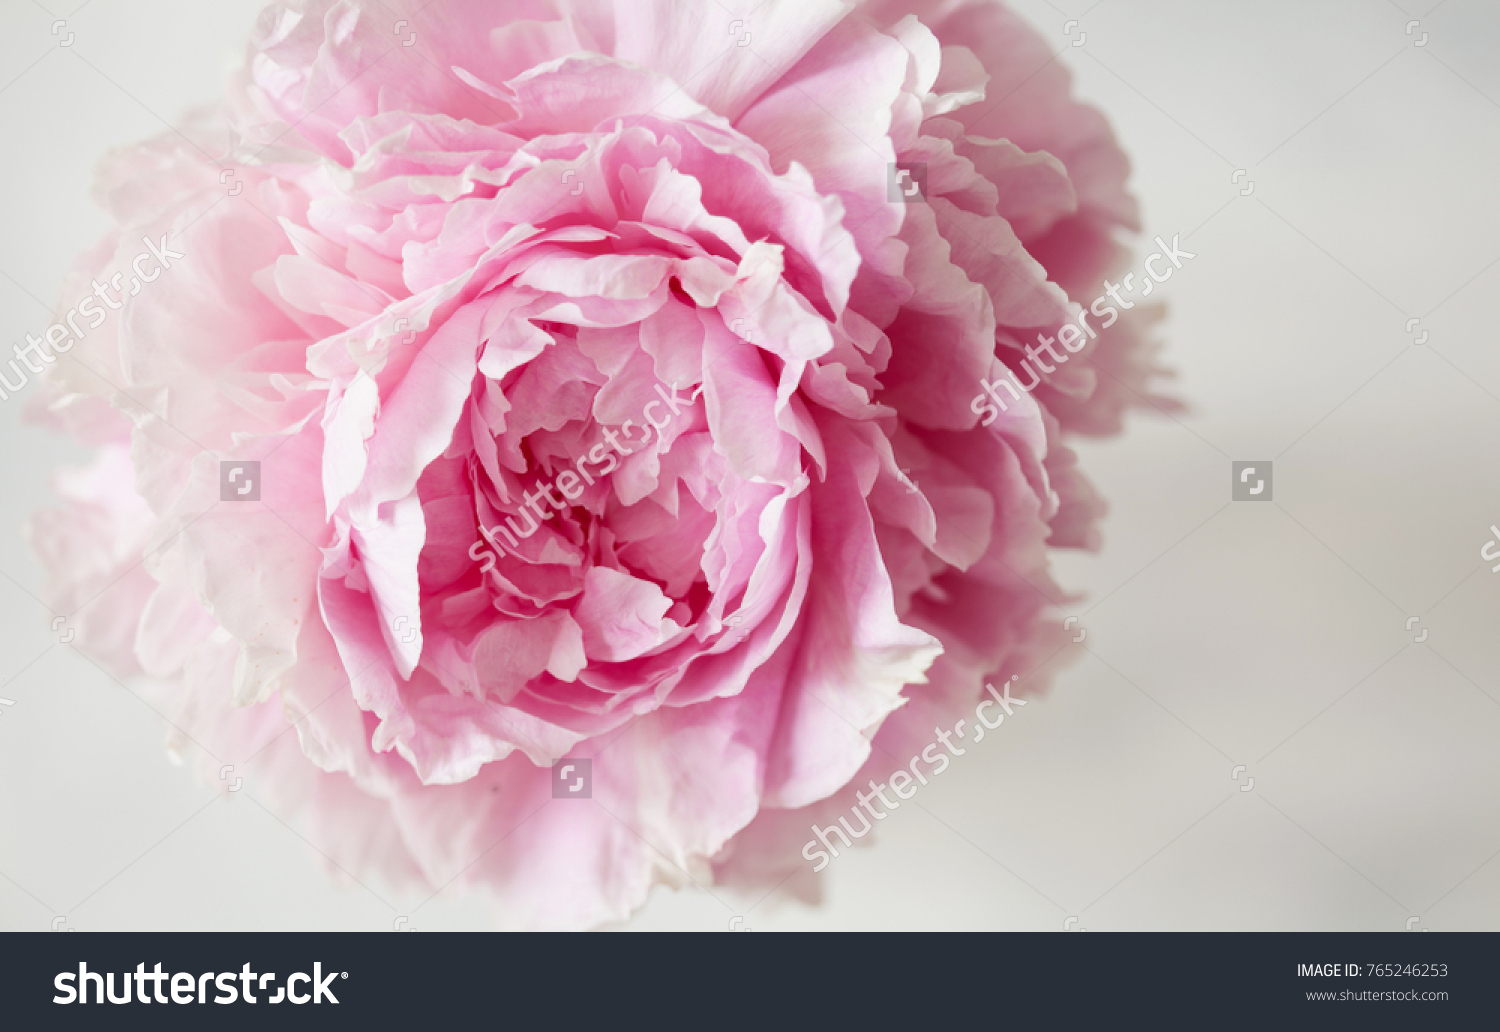 Close Up Of Fresh Pink Peony Rose Flower Pastel Floral Wallpaper